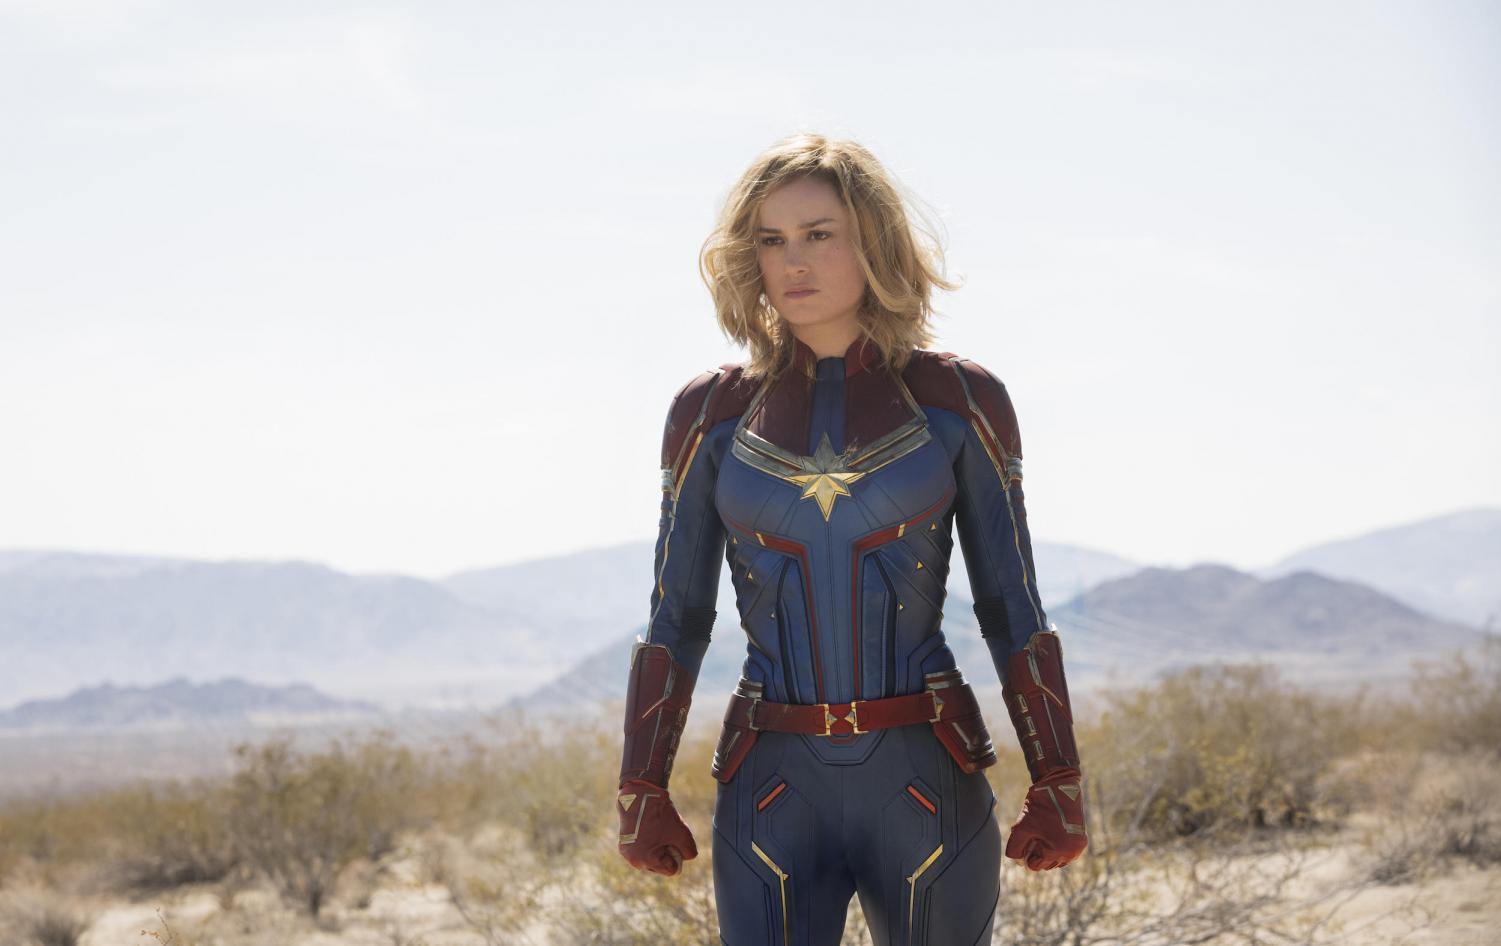 Brie Larson as Captain Marvel. Image provided by Marvel.